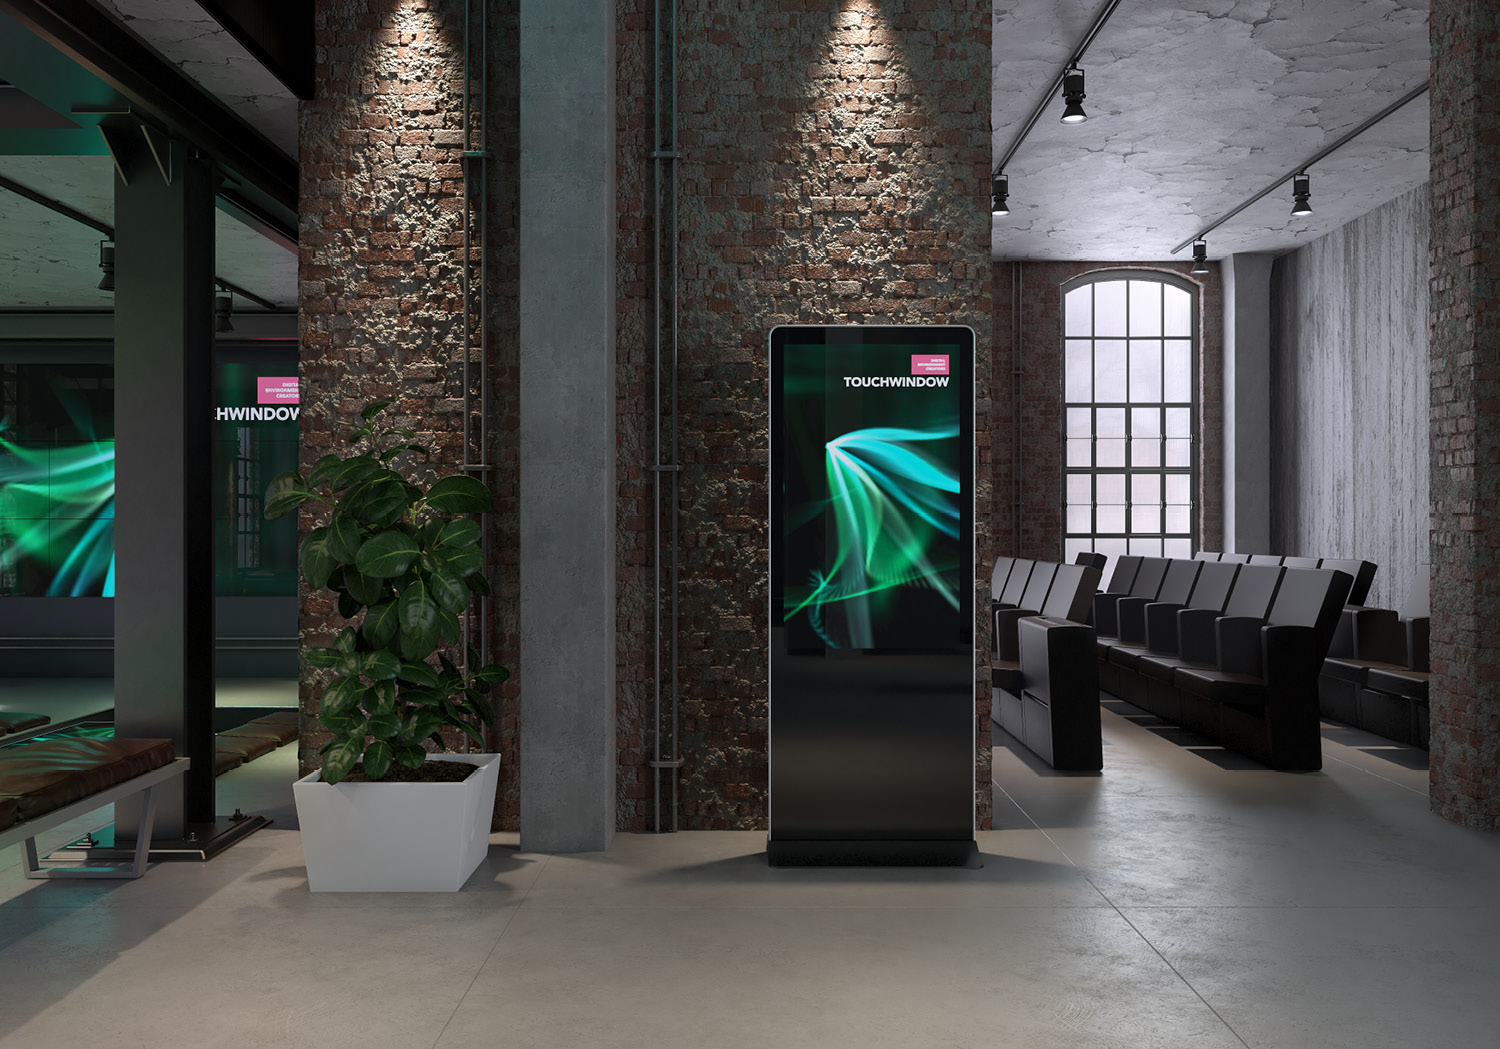 Touchwindow kiosk